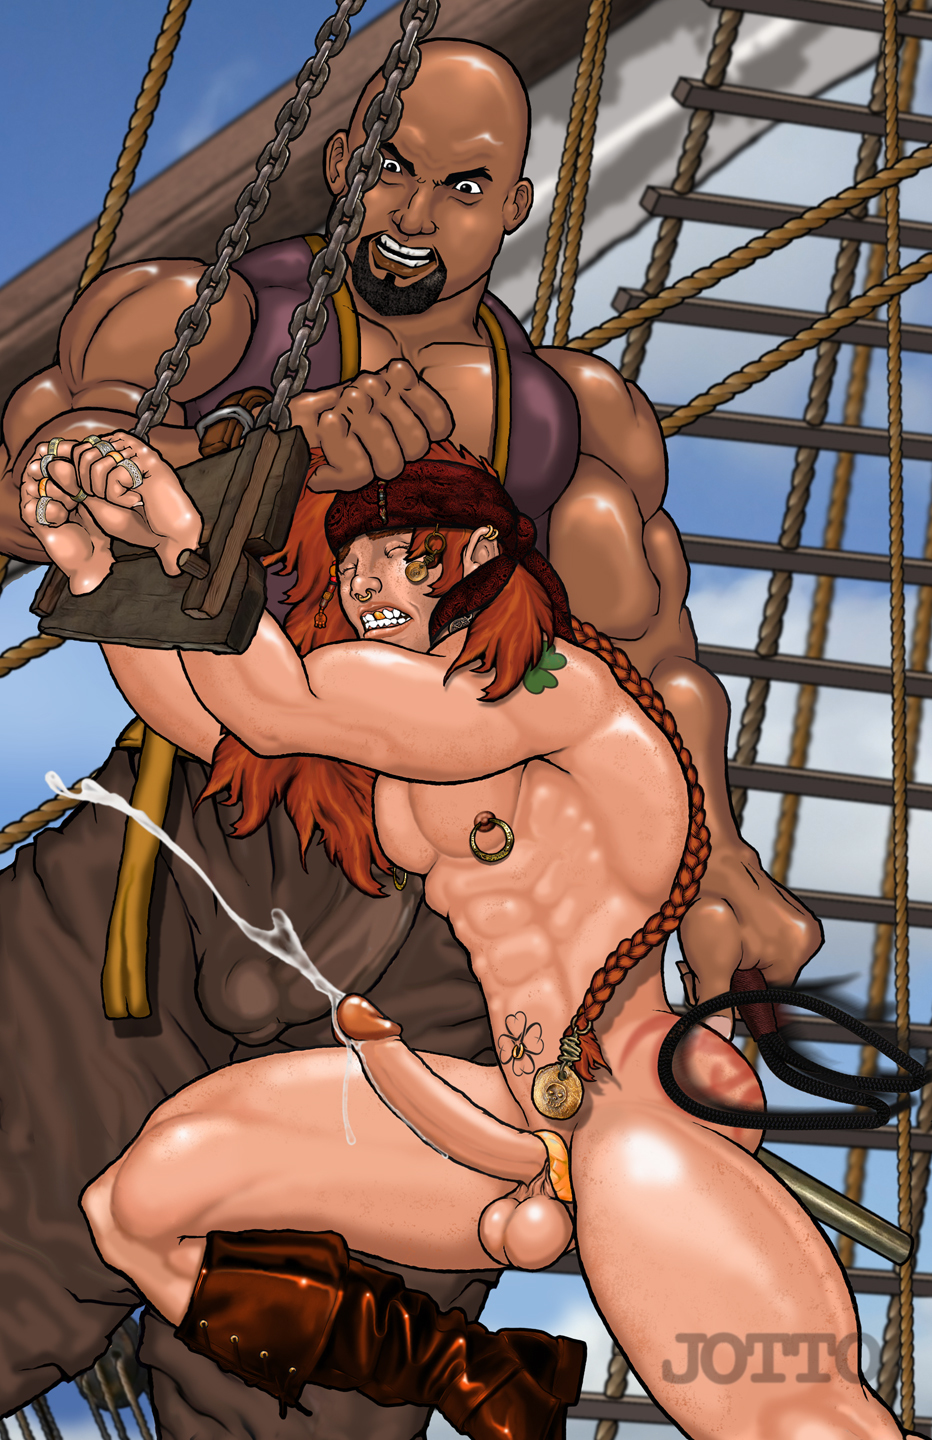 Female pirate porn pictures porncraft tubes